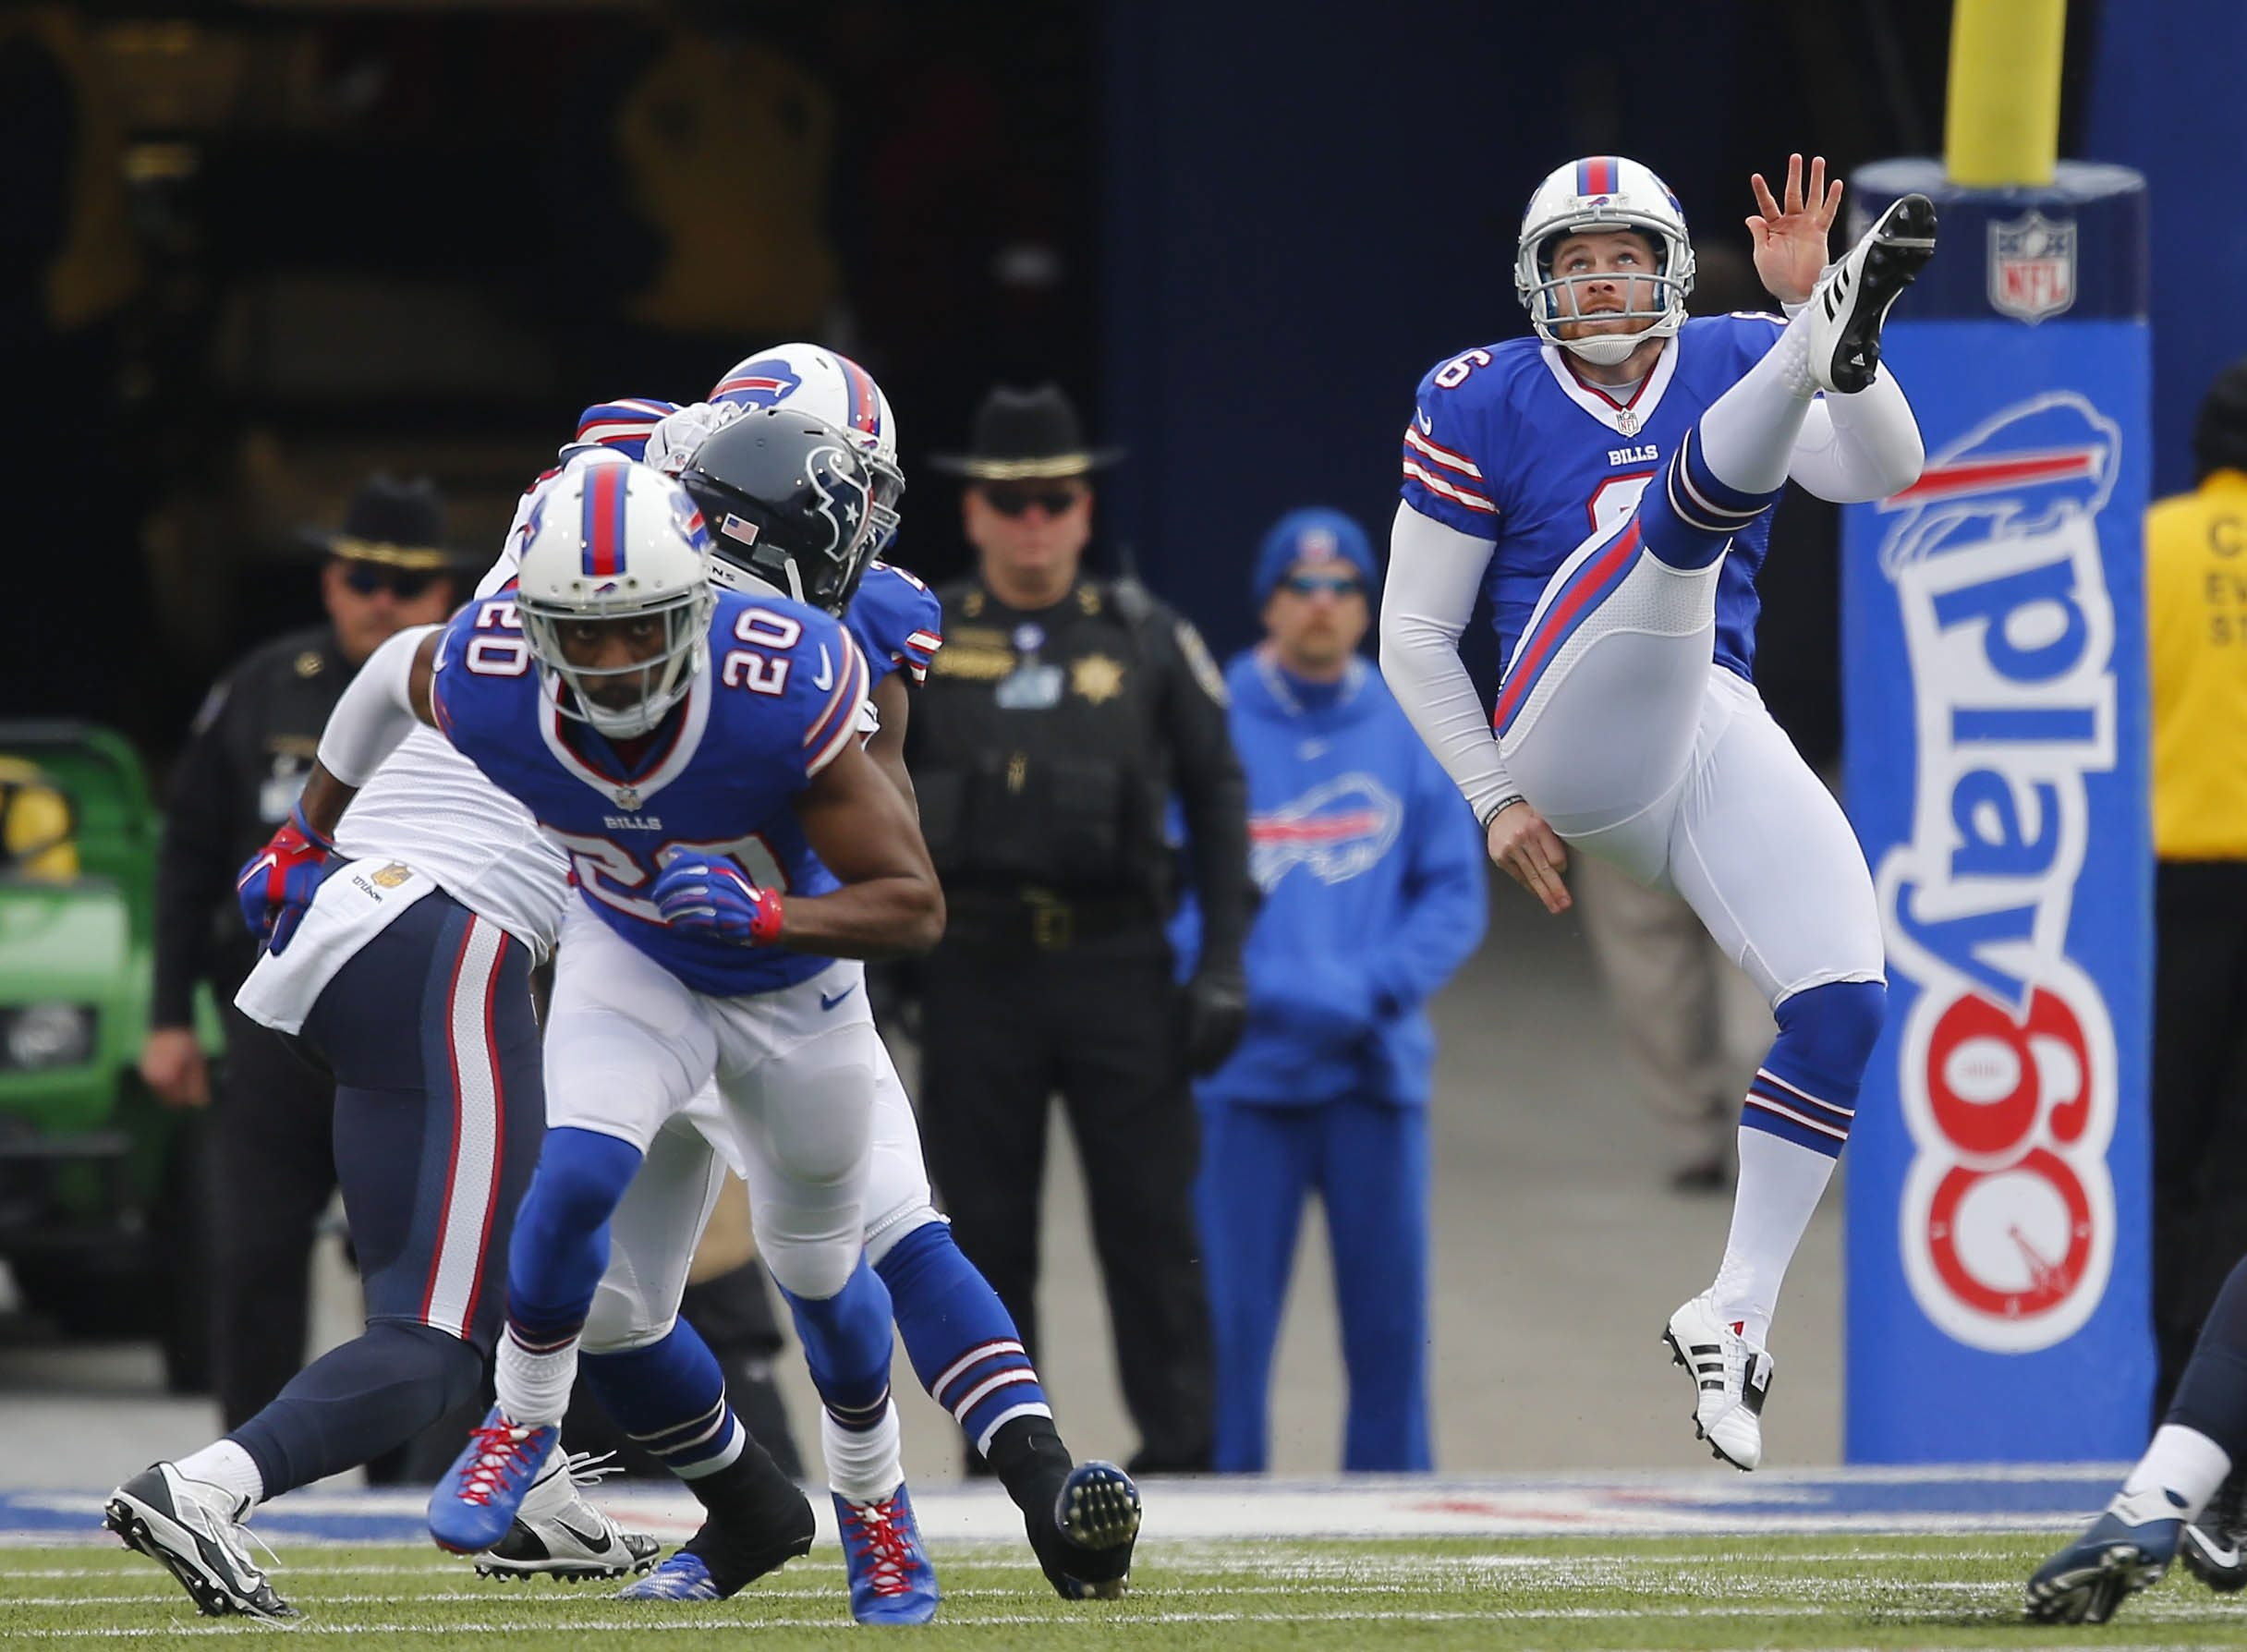 Bills punter Colton Schmidt is off to a strong start in training camp. (Mark Mulville/Buffalo News)